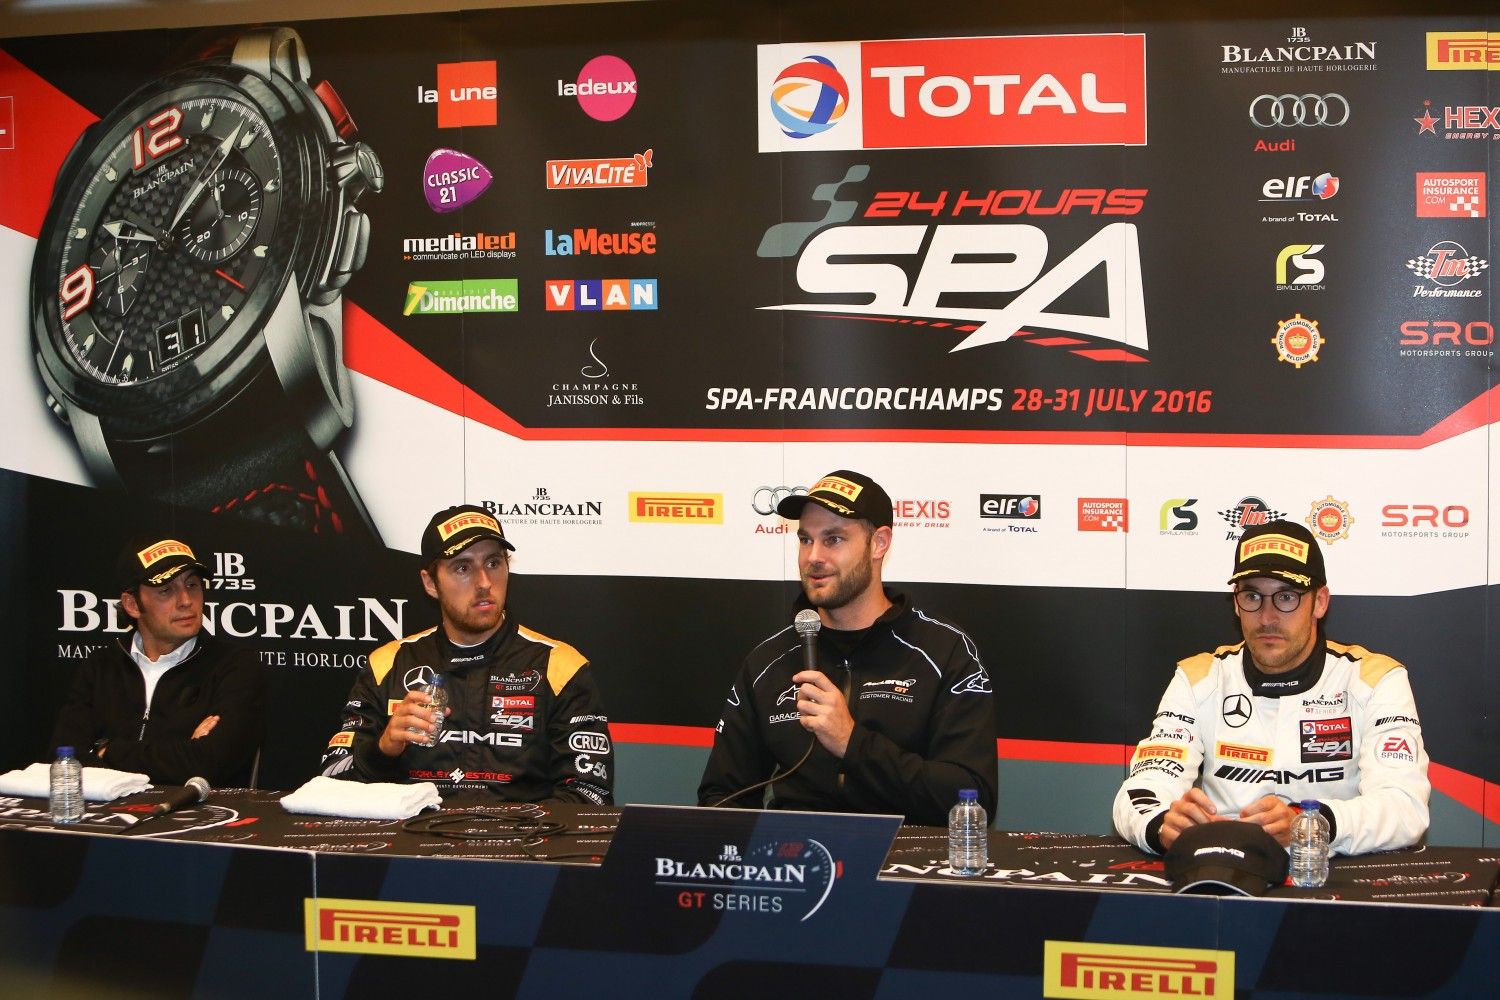 POST PRE QUALIFICATION PRESS CONFERENCE #58 GARAGE 59 (GBR) MCLAREN 650S GT3 SHANE VAN GISBERGEN (NZL) WITH MAXIMILAN GOTZ (DEU) MIGUEL TORIL (SPA) AND NICOLA CADEI (ITA) | OLIVIER BEROUD / VISION SPORT AGENCY